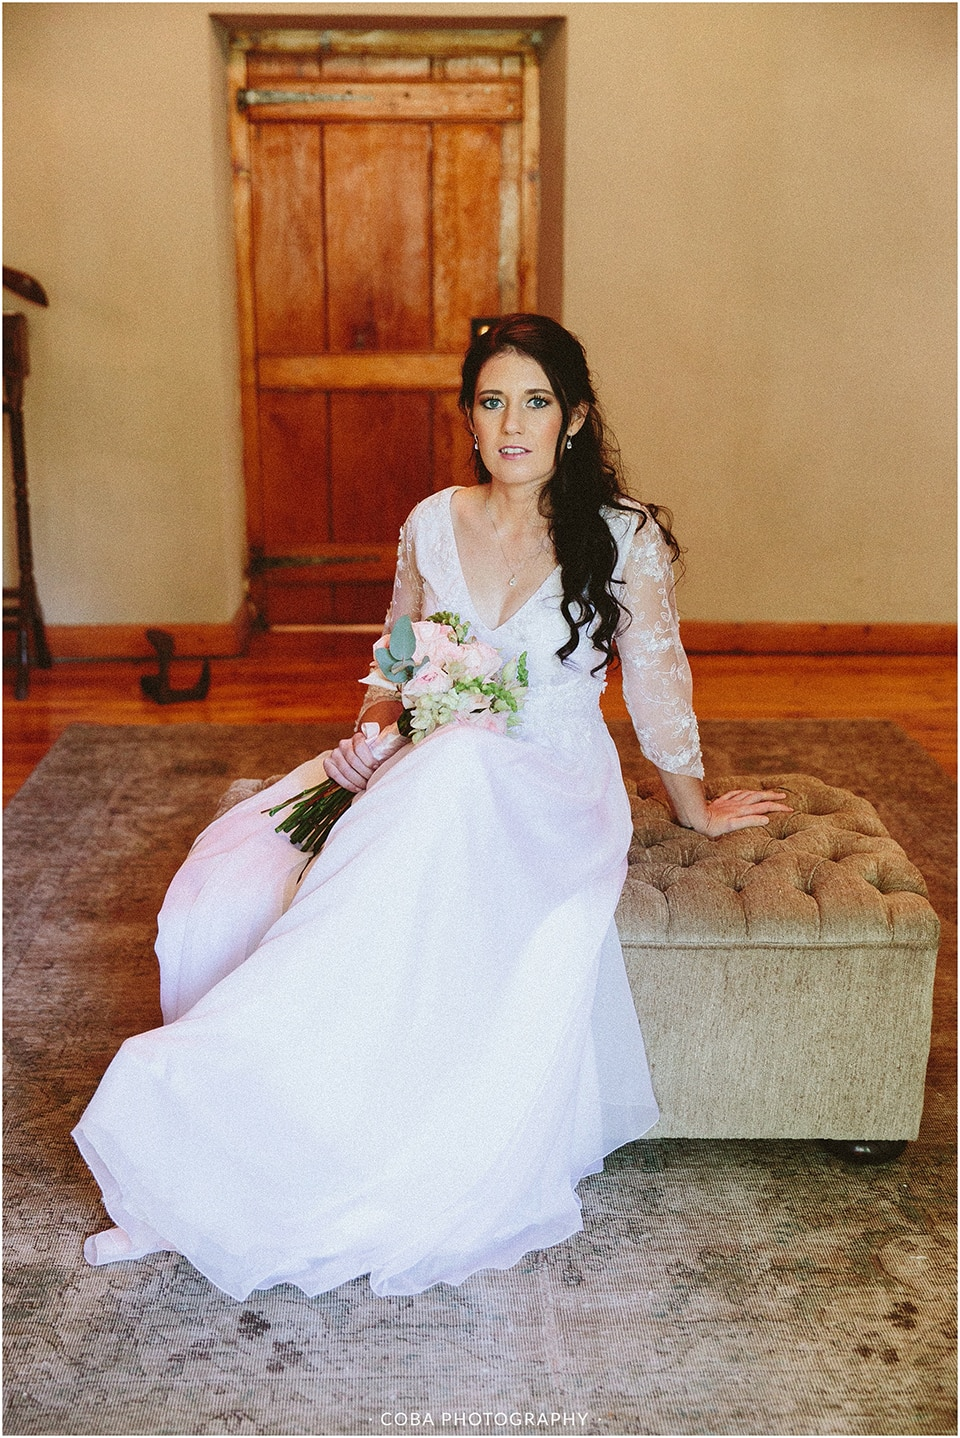 Carlo & Nicolette - Langkloof Roses - Coba Photography (83)